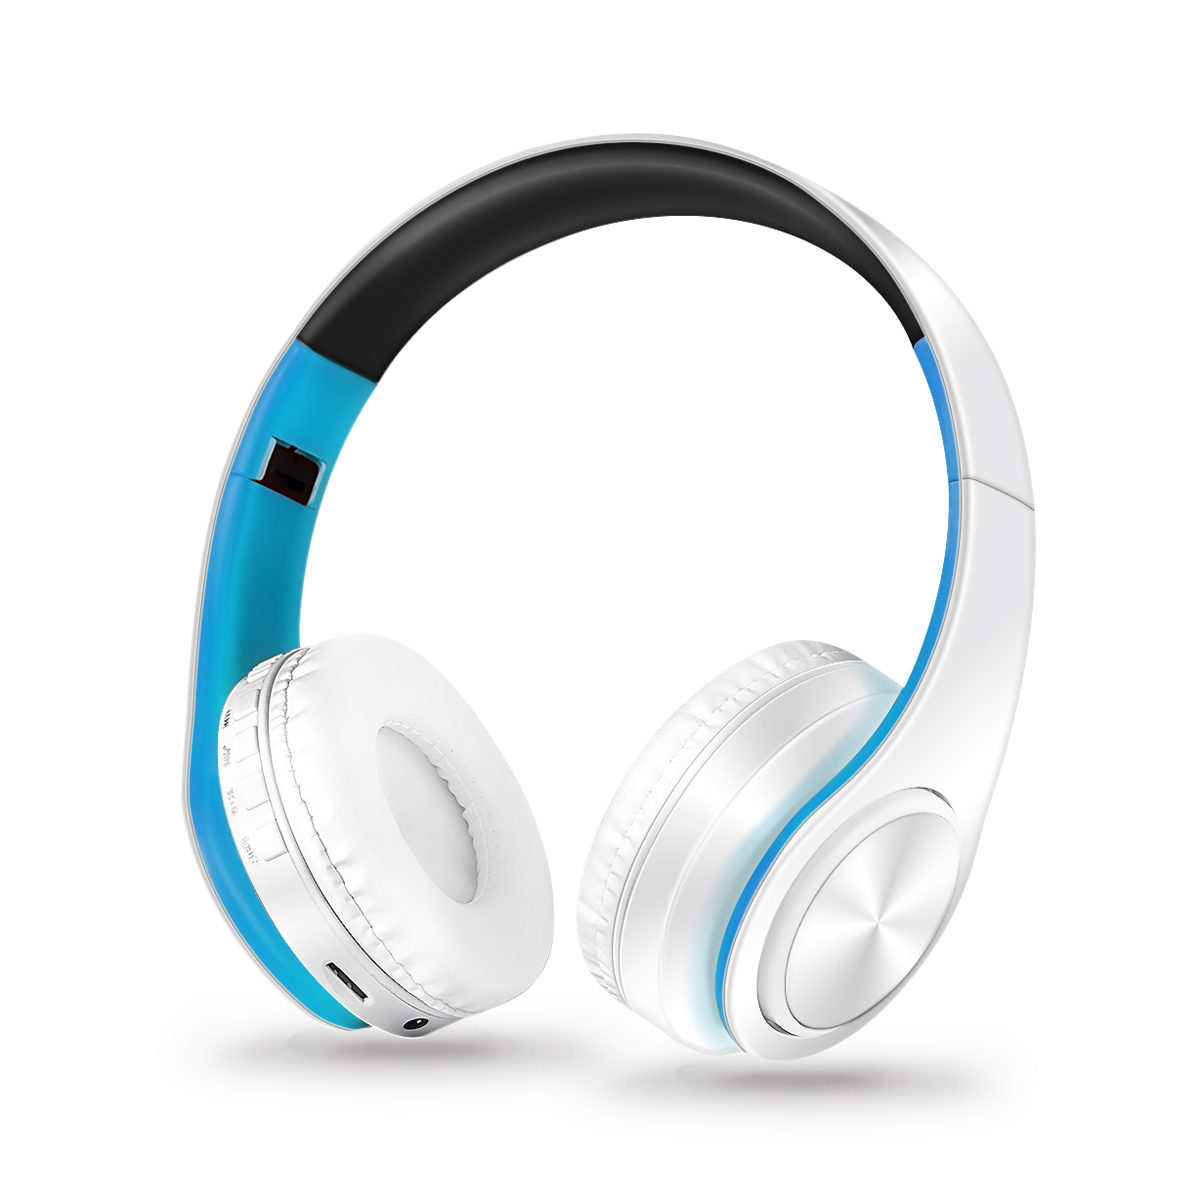 HI-FI Stereo Surround Bluetooth 4.0 Rechargeable Over Ear Sport Headset Foldable Wireless Wired Headphones Noise Cancelling TF FM Radio Microphone AUX for Phone TV Computer